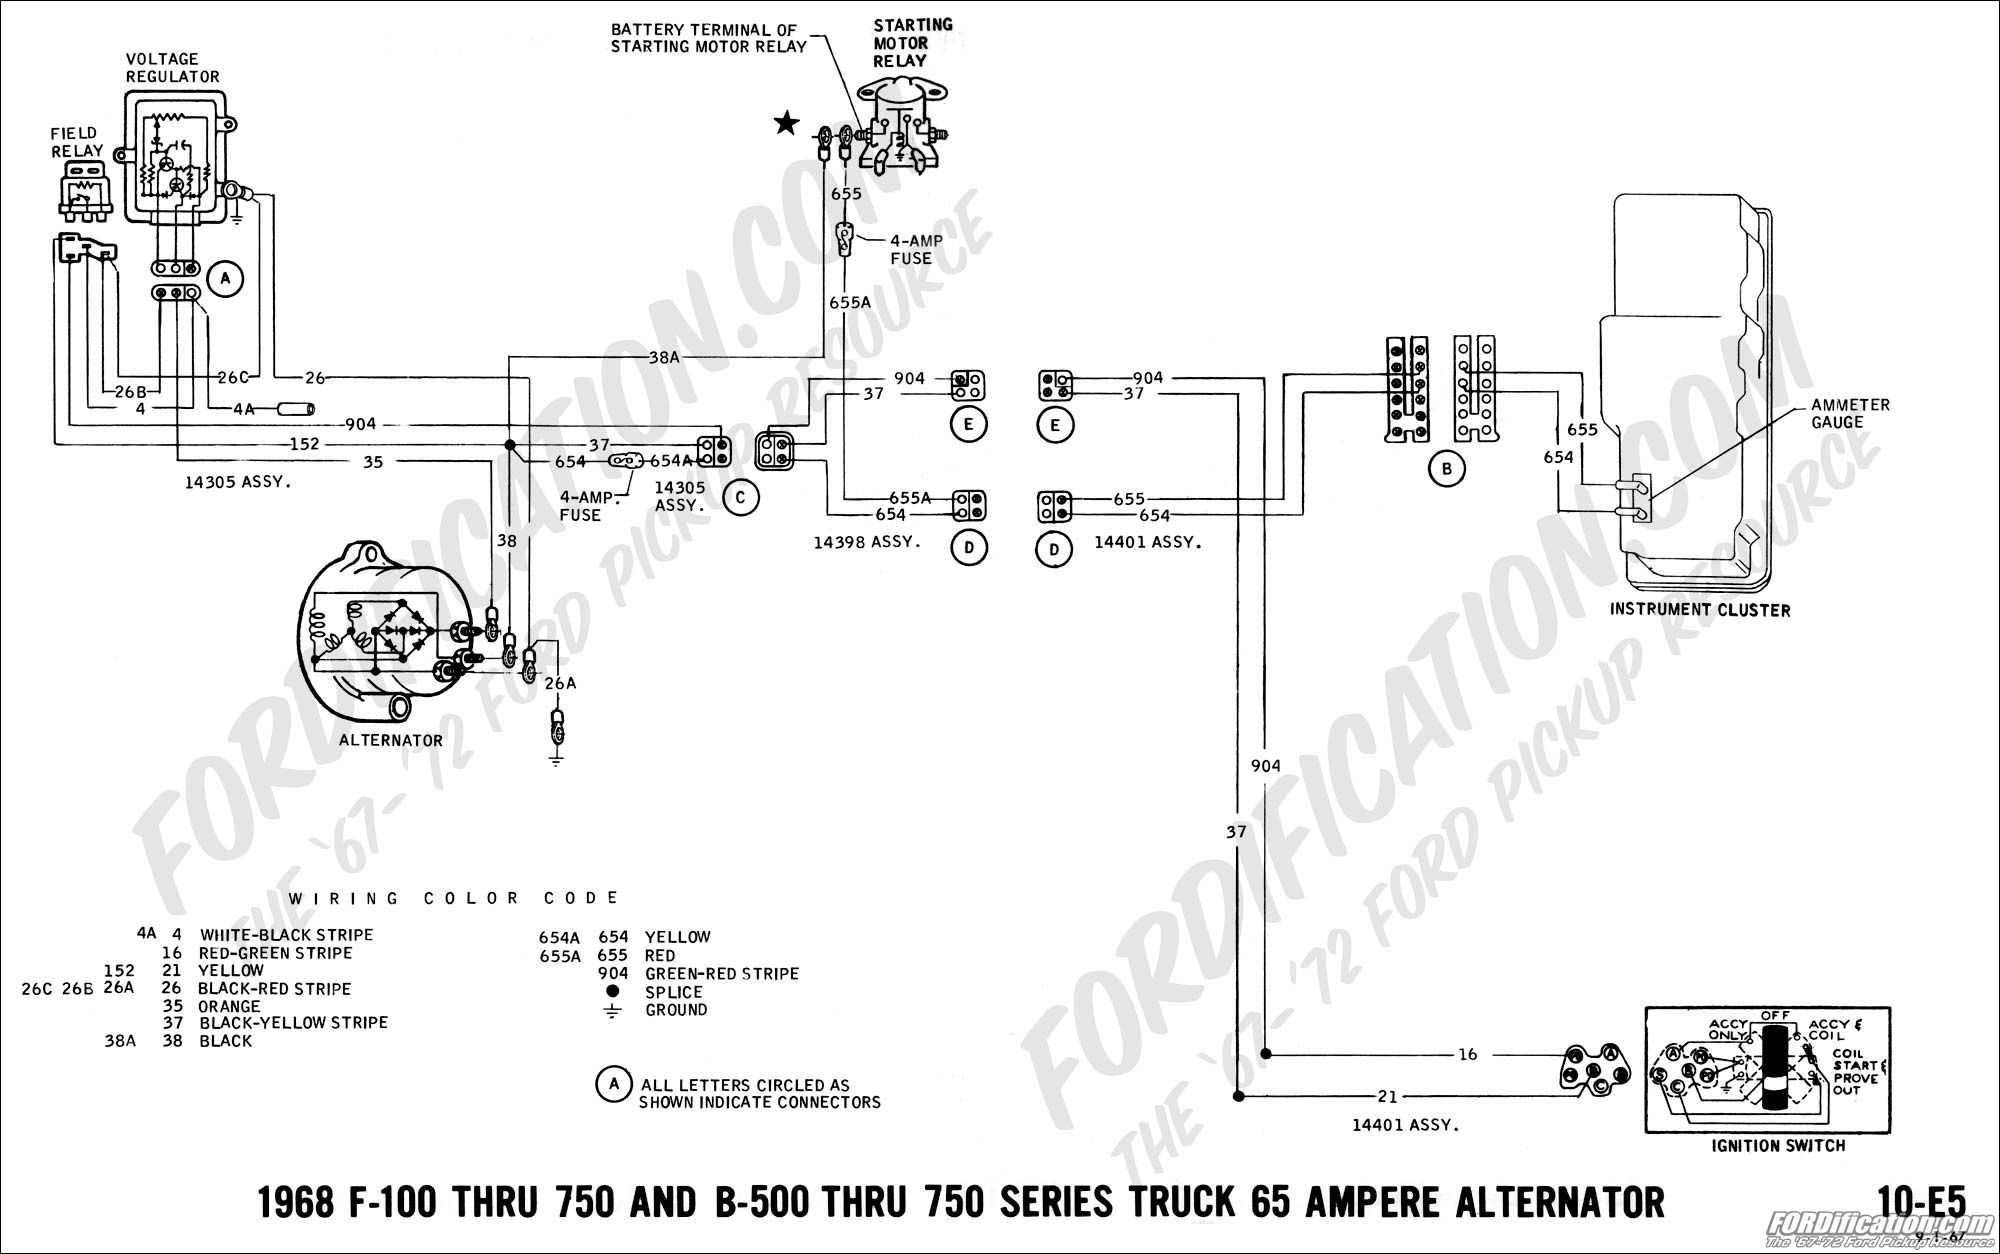 [SCHEMATICS_48ZD]  36BC Basic Jeep Alternator Wiring Diagram | Wiring Library | Alternator Wiring Jeep |  | Wiring Library